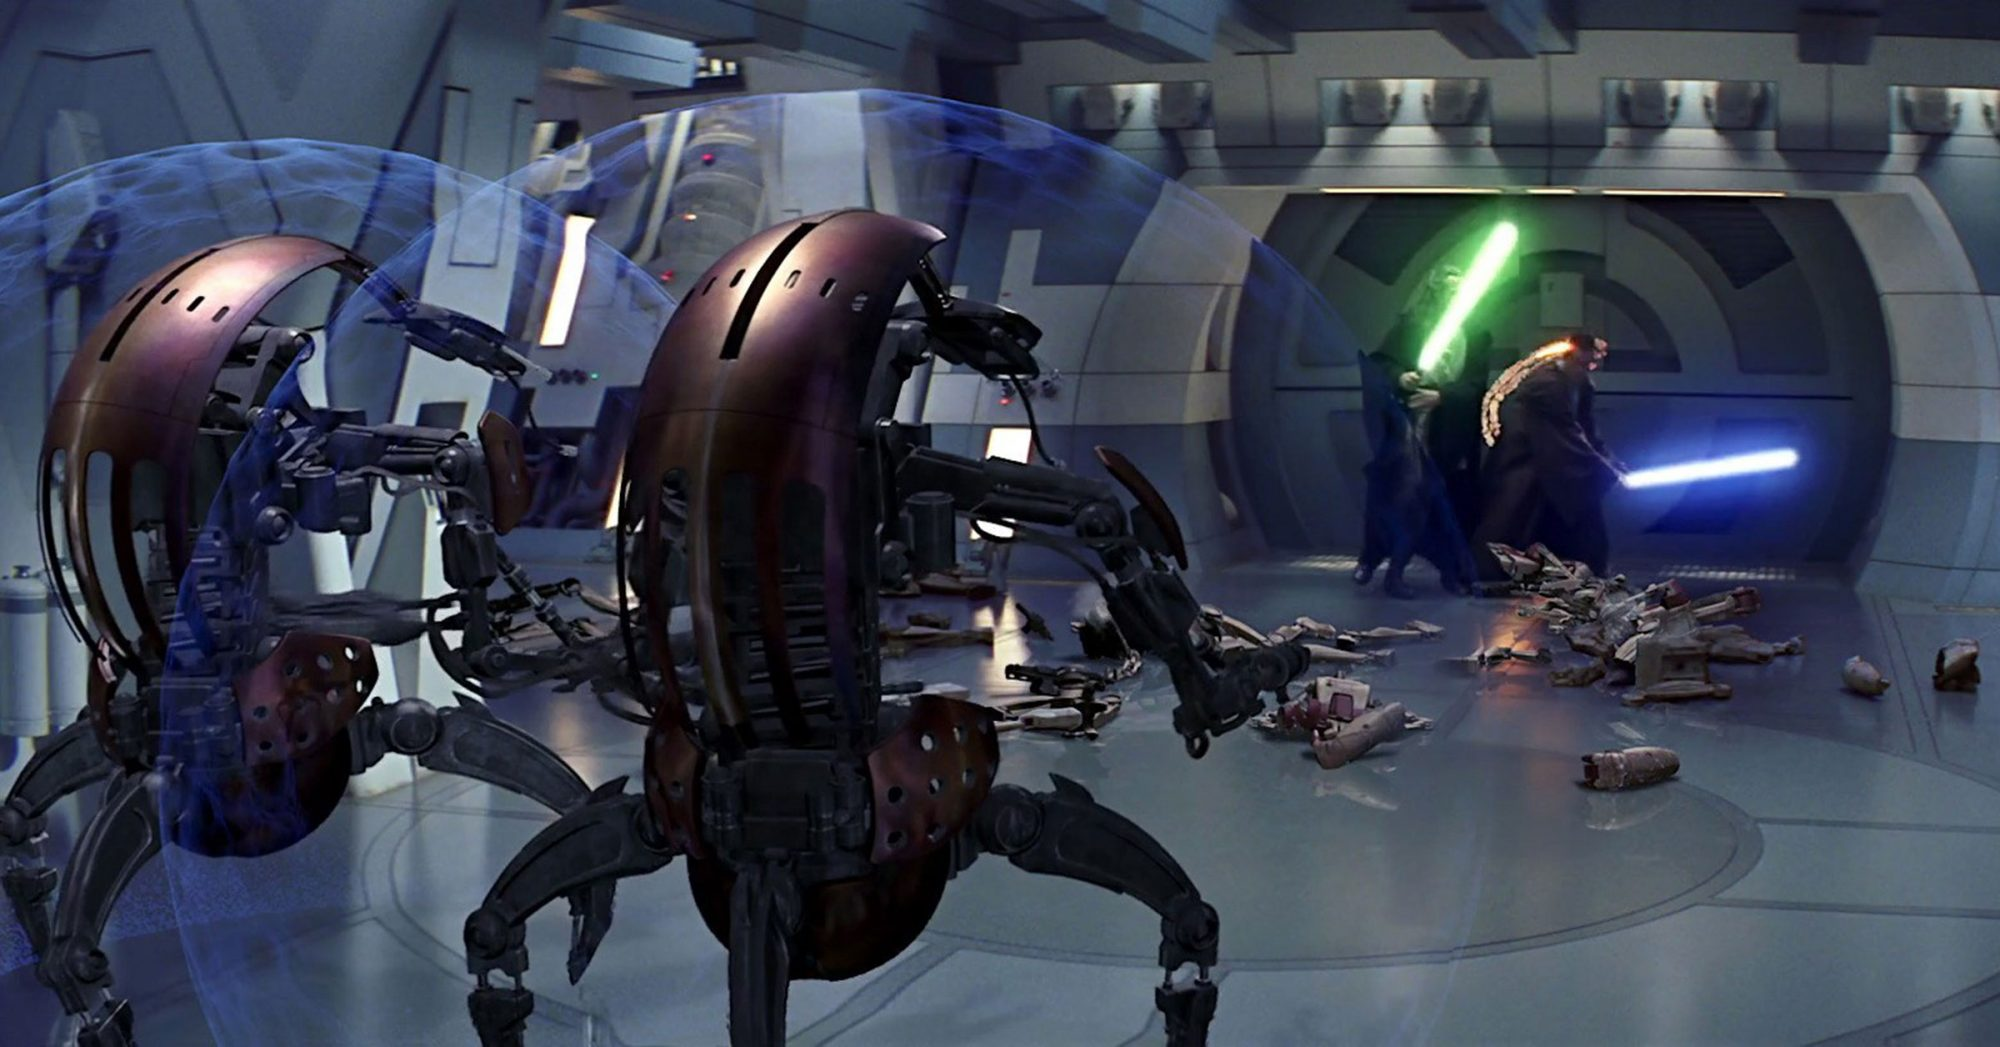 22. Droideka (The Phantom Menace)